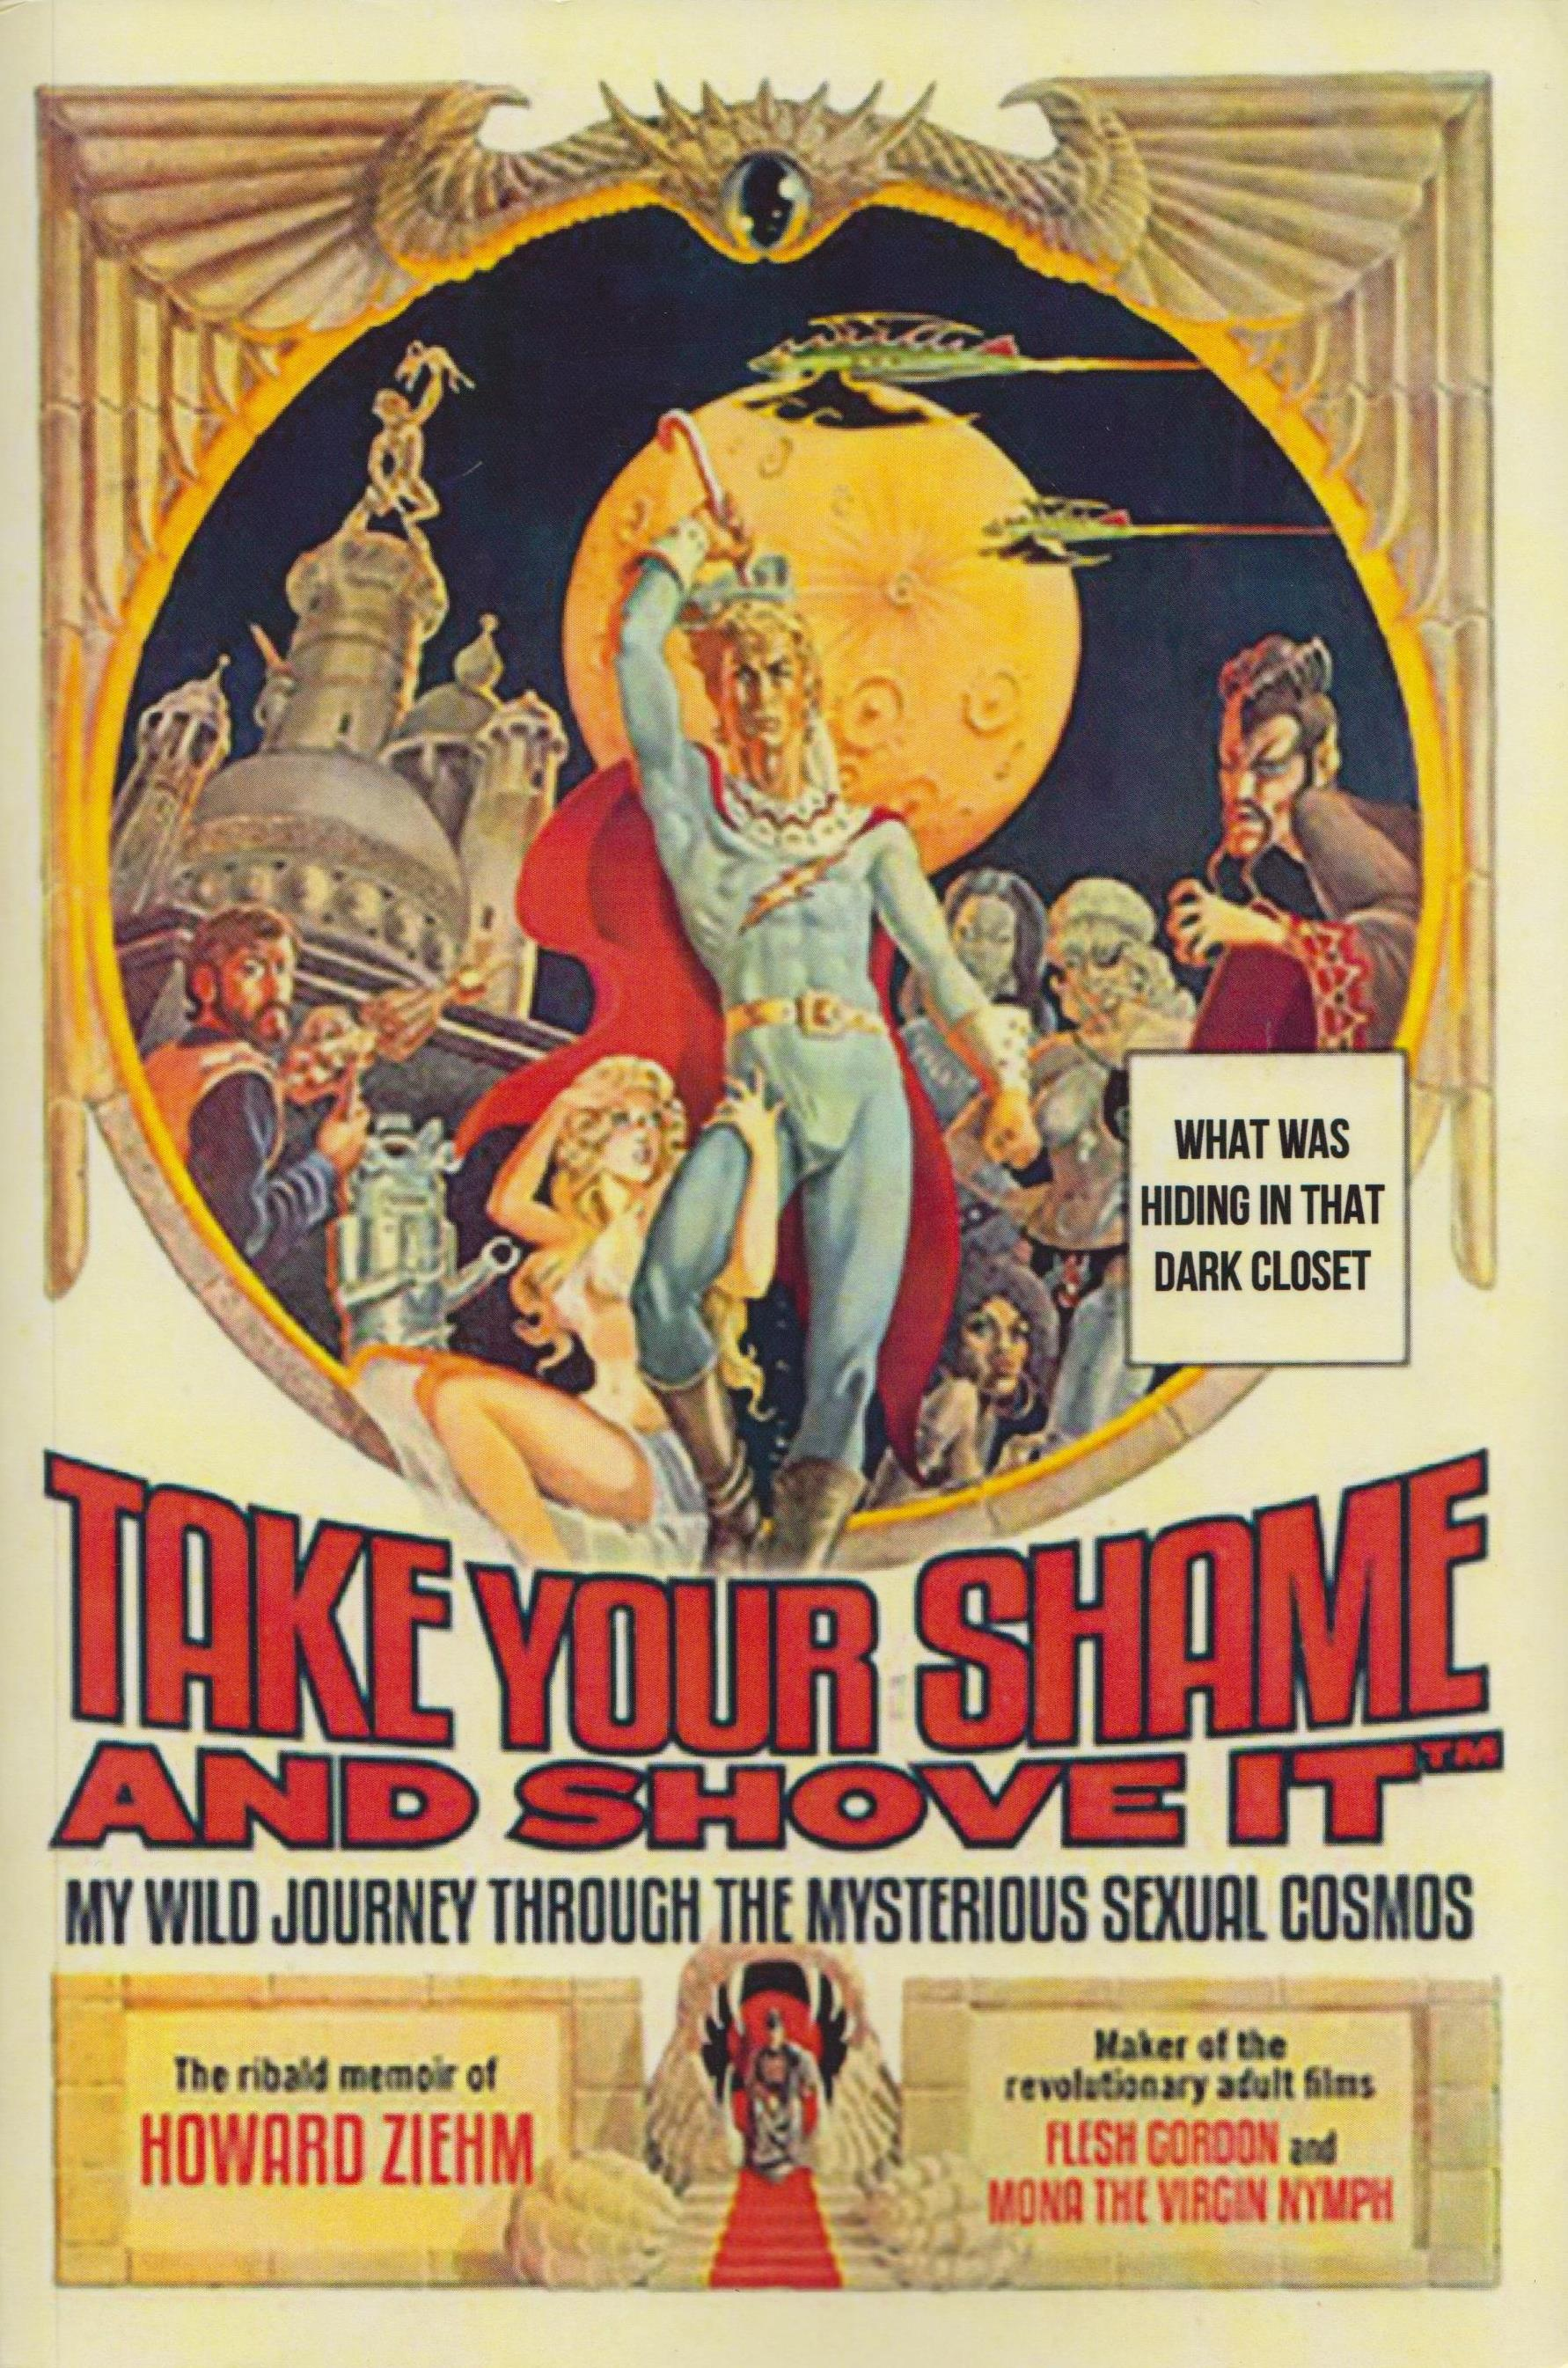 Friday Reads: Take Your Shame and Shove It by Howard Ziehm